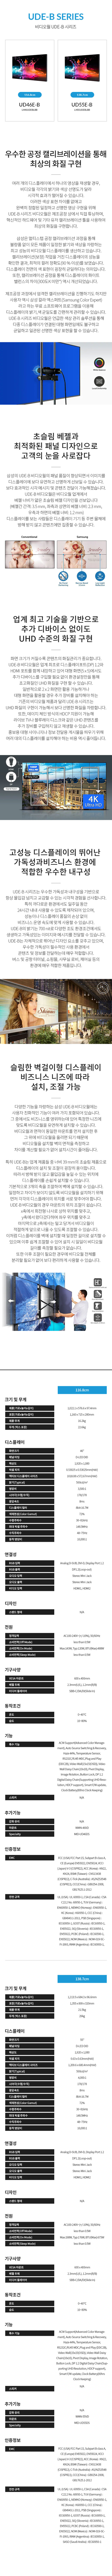 Video Wall-UDE-B Series